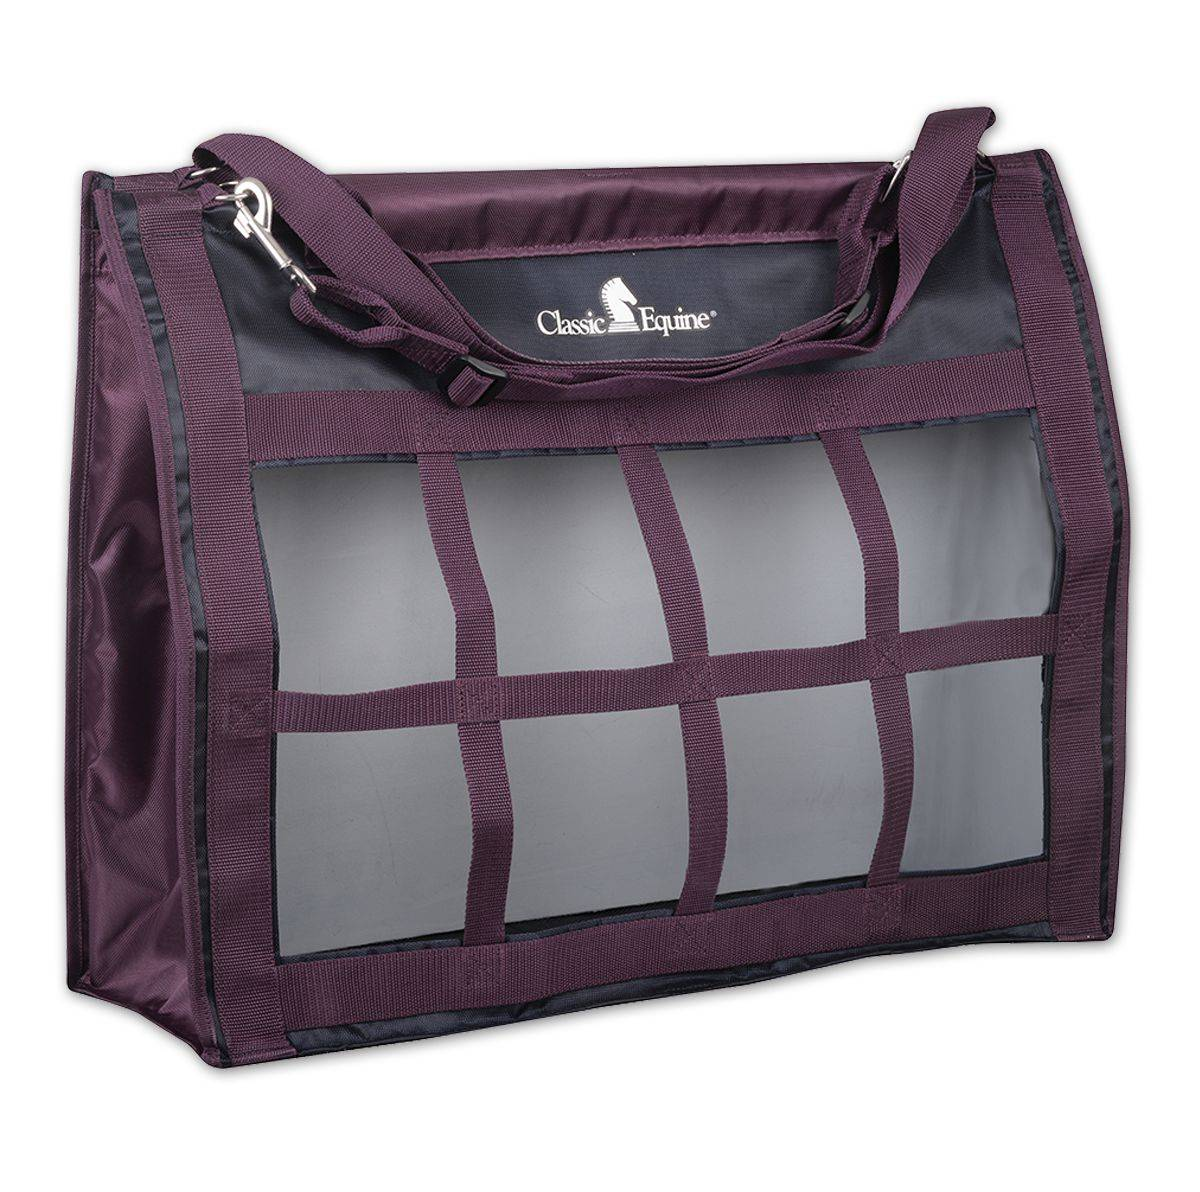 Classic Equine Top Load Hay Bag - Solid Colors